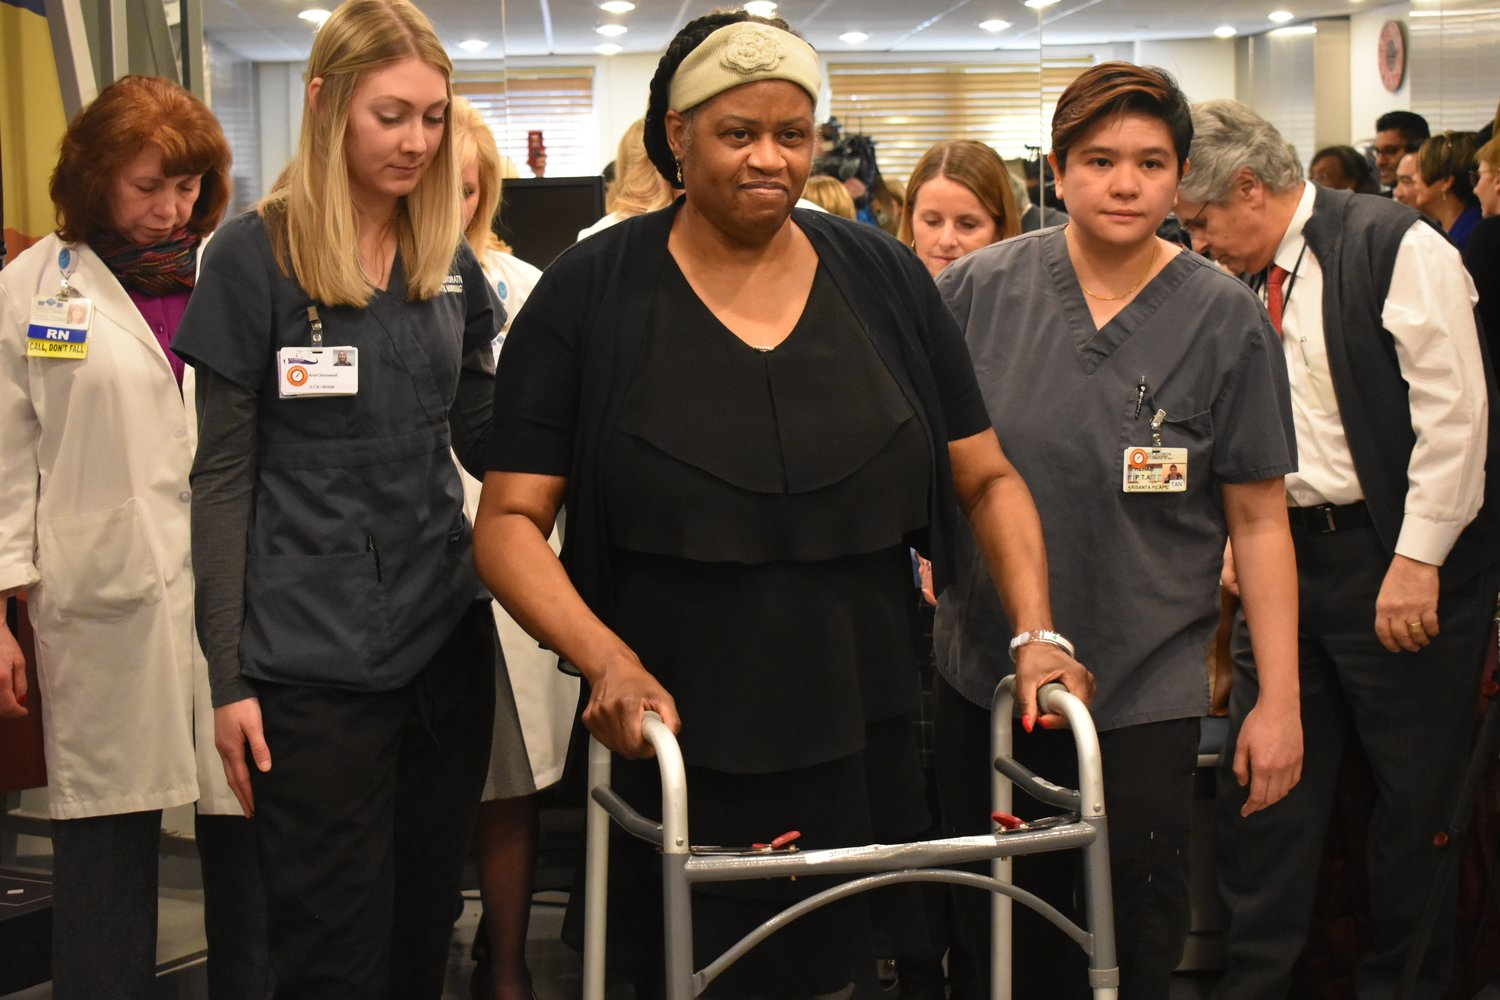 Patricia Lewis, of Rockville Centre, who had both legs amputated due to complications of undiagnosed diabetes, walked on prosthetic legs at Lynbrook Restorative Therapy and Nursing on Jan. 31, before returning home. Therapists Arielle Whitehall, left, and Tan Pilapil joined her.